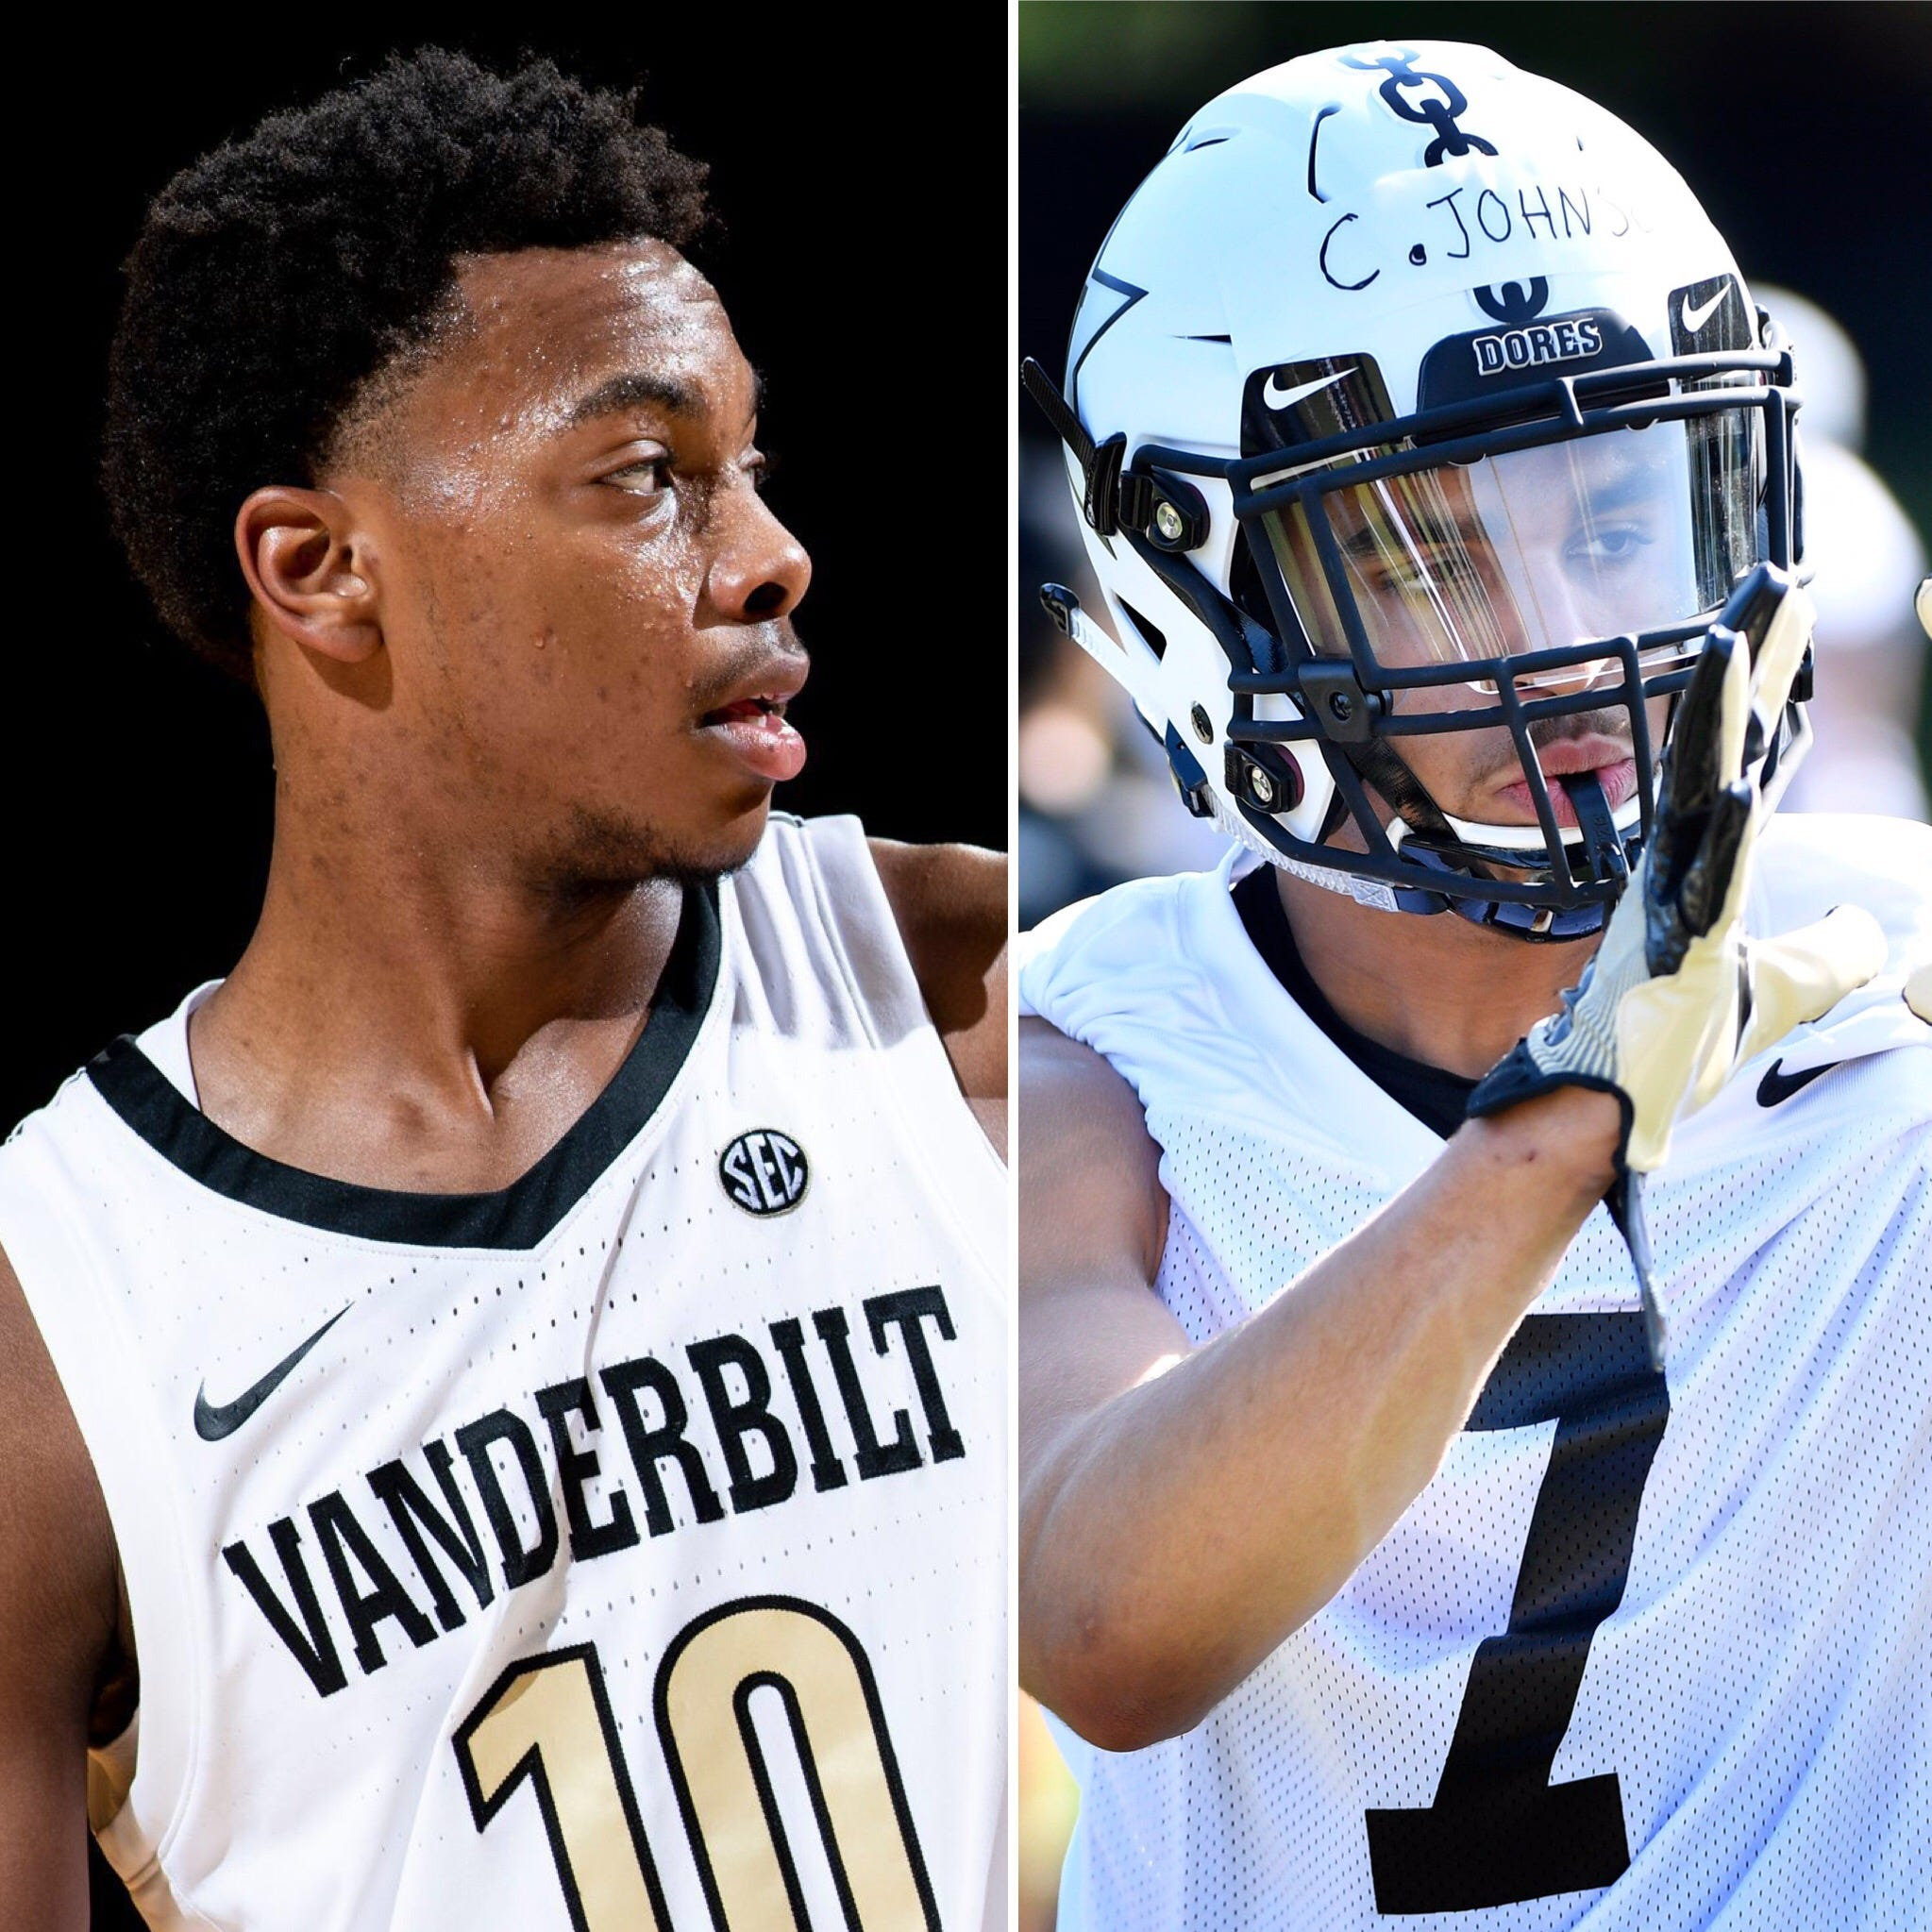 Vanderbilt's Darius Garland is gone, but Cam Johnson is back after frustrating year